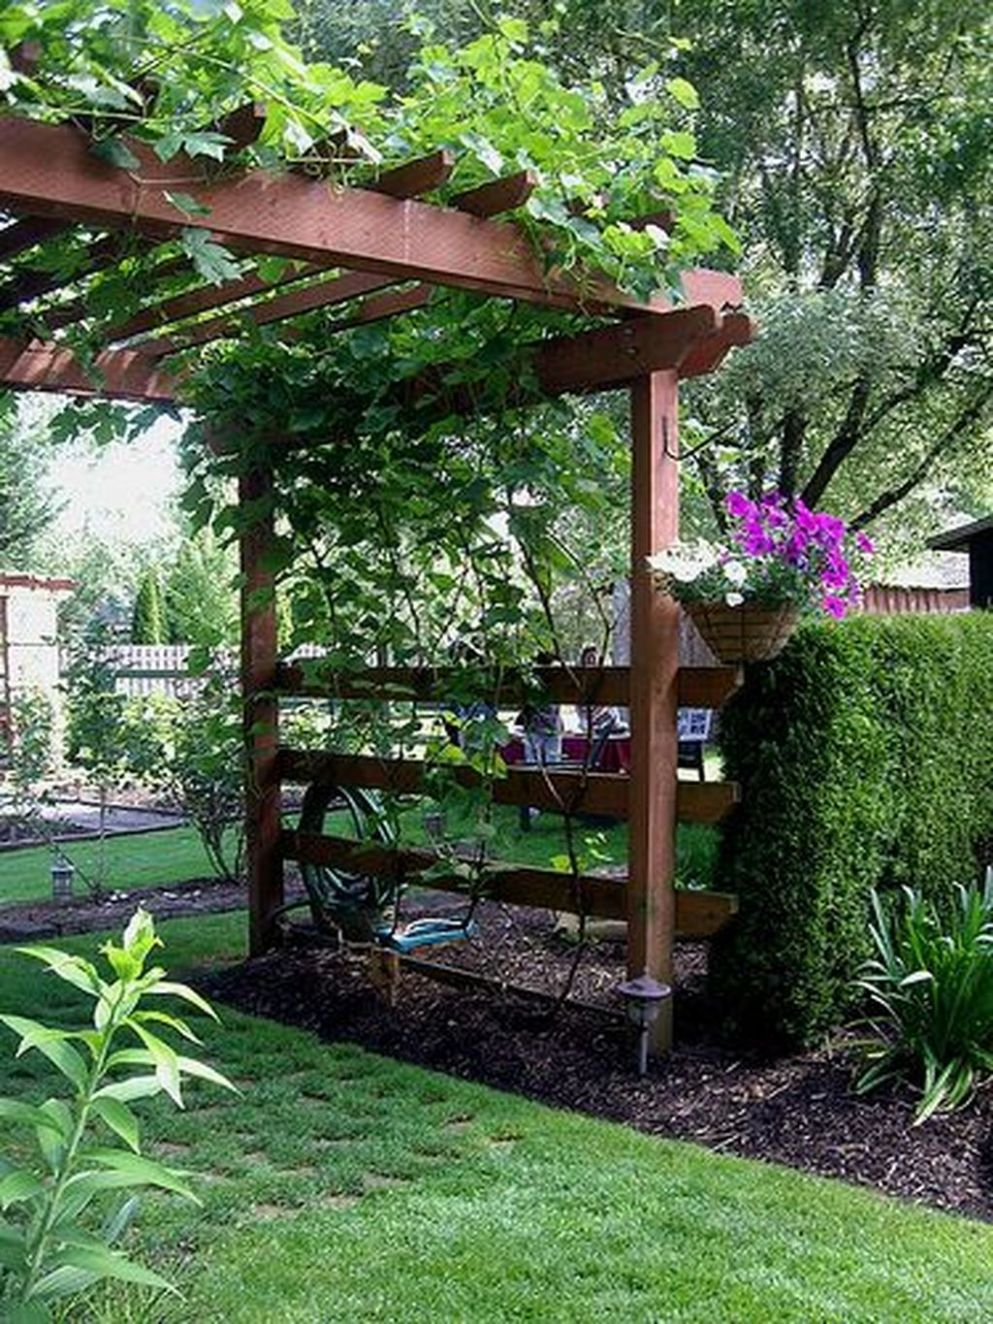 12 Inspiring Grape Vine Ideas To Beautify Your Garden | Cottage ..